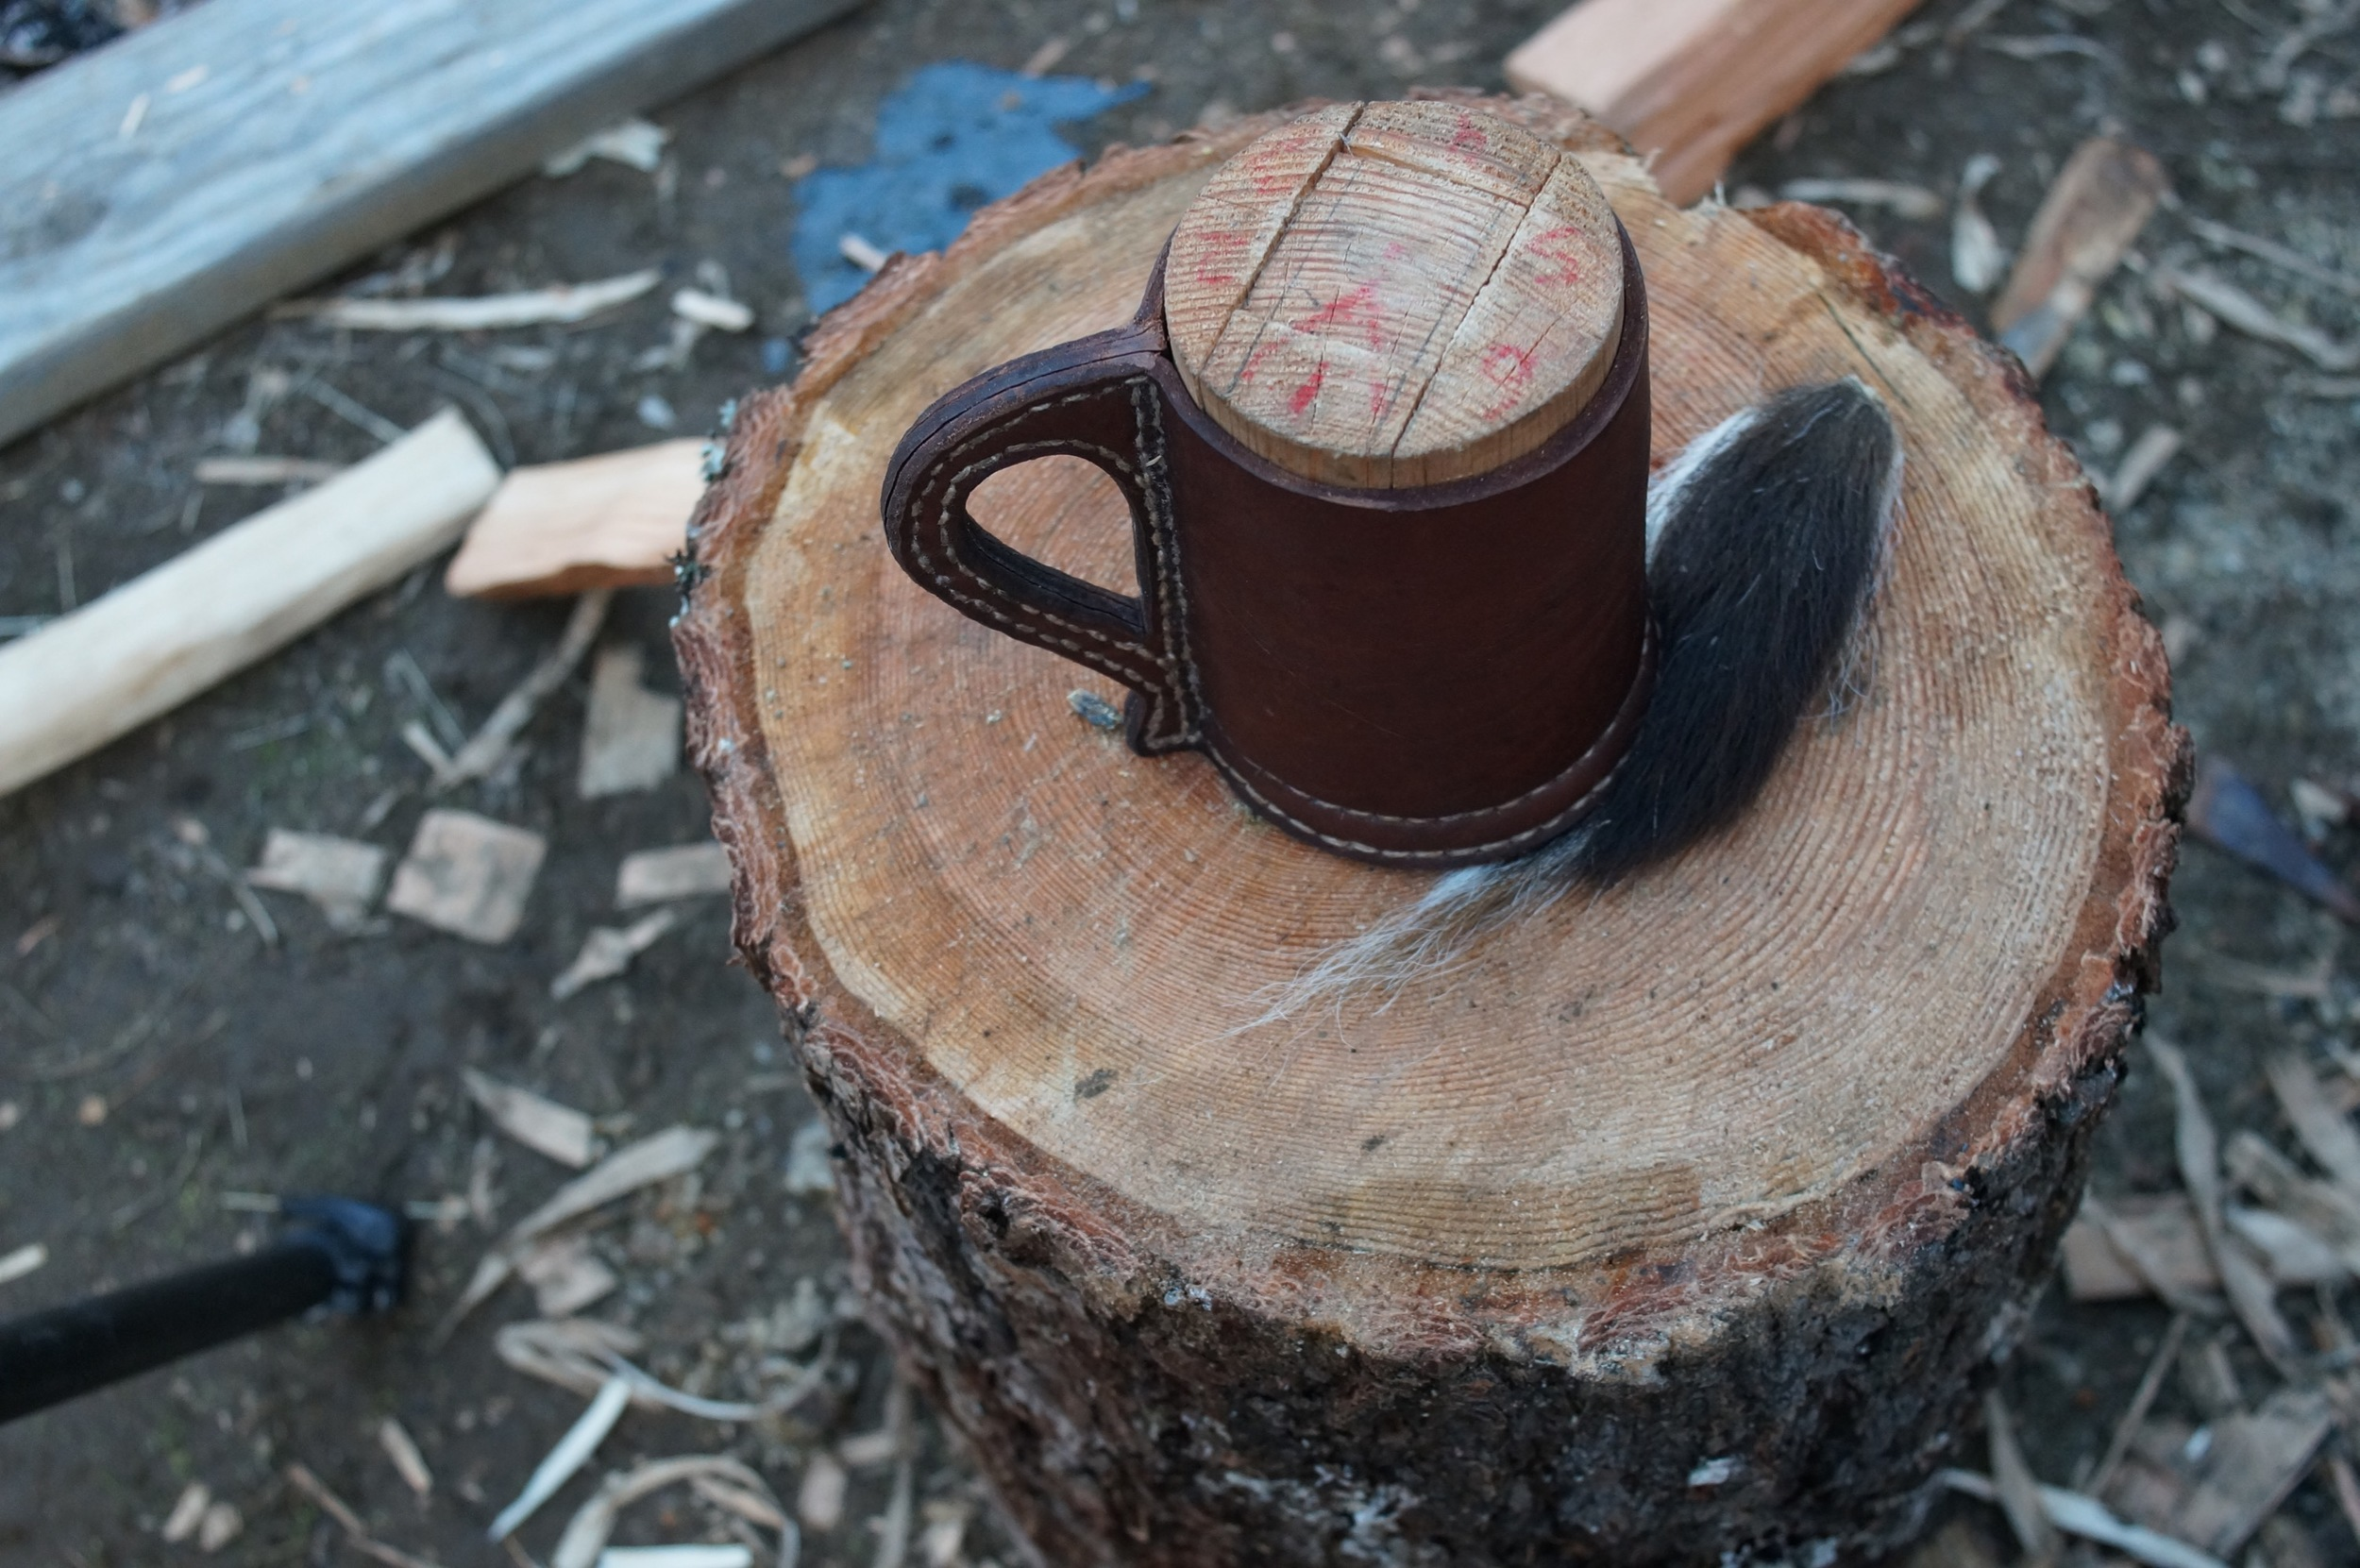 The leather mug project . My most popular video to date. Got me a massive number of views and subscribers overnight when someone shared it on Reddit. Thanks!